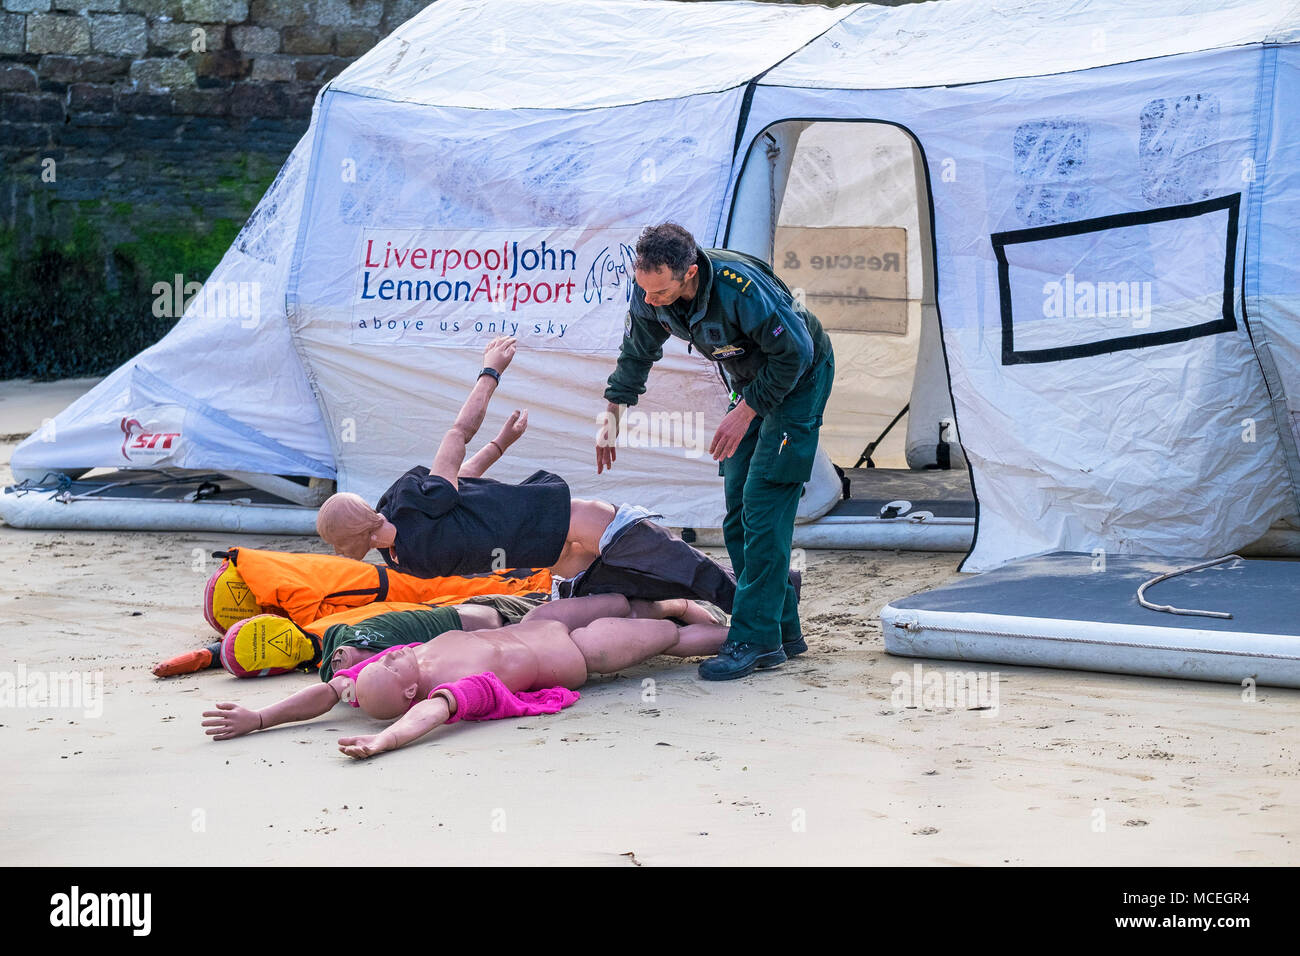 A paramedic using mannequins in preparation for use in a GMICE (Good Medicine in Challenging Environments) major incident exercise in Newquay Harbour  - Stock Image